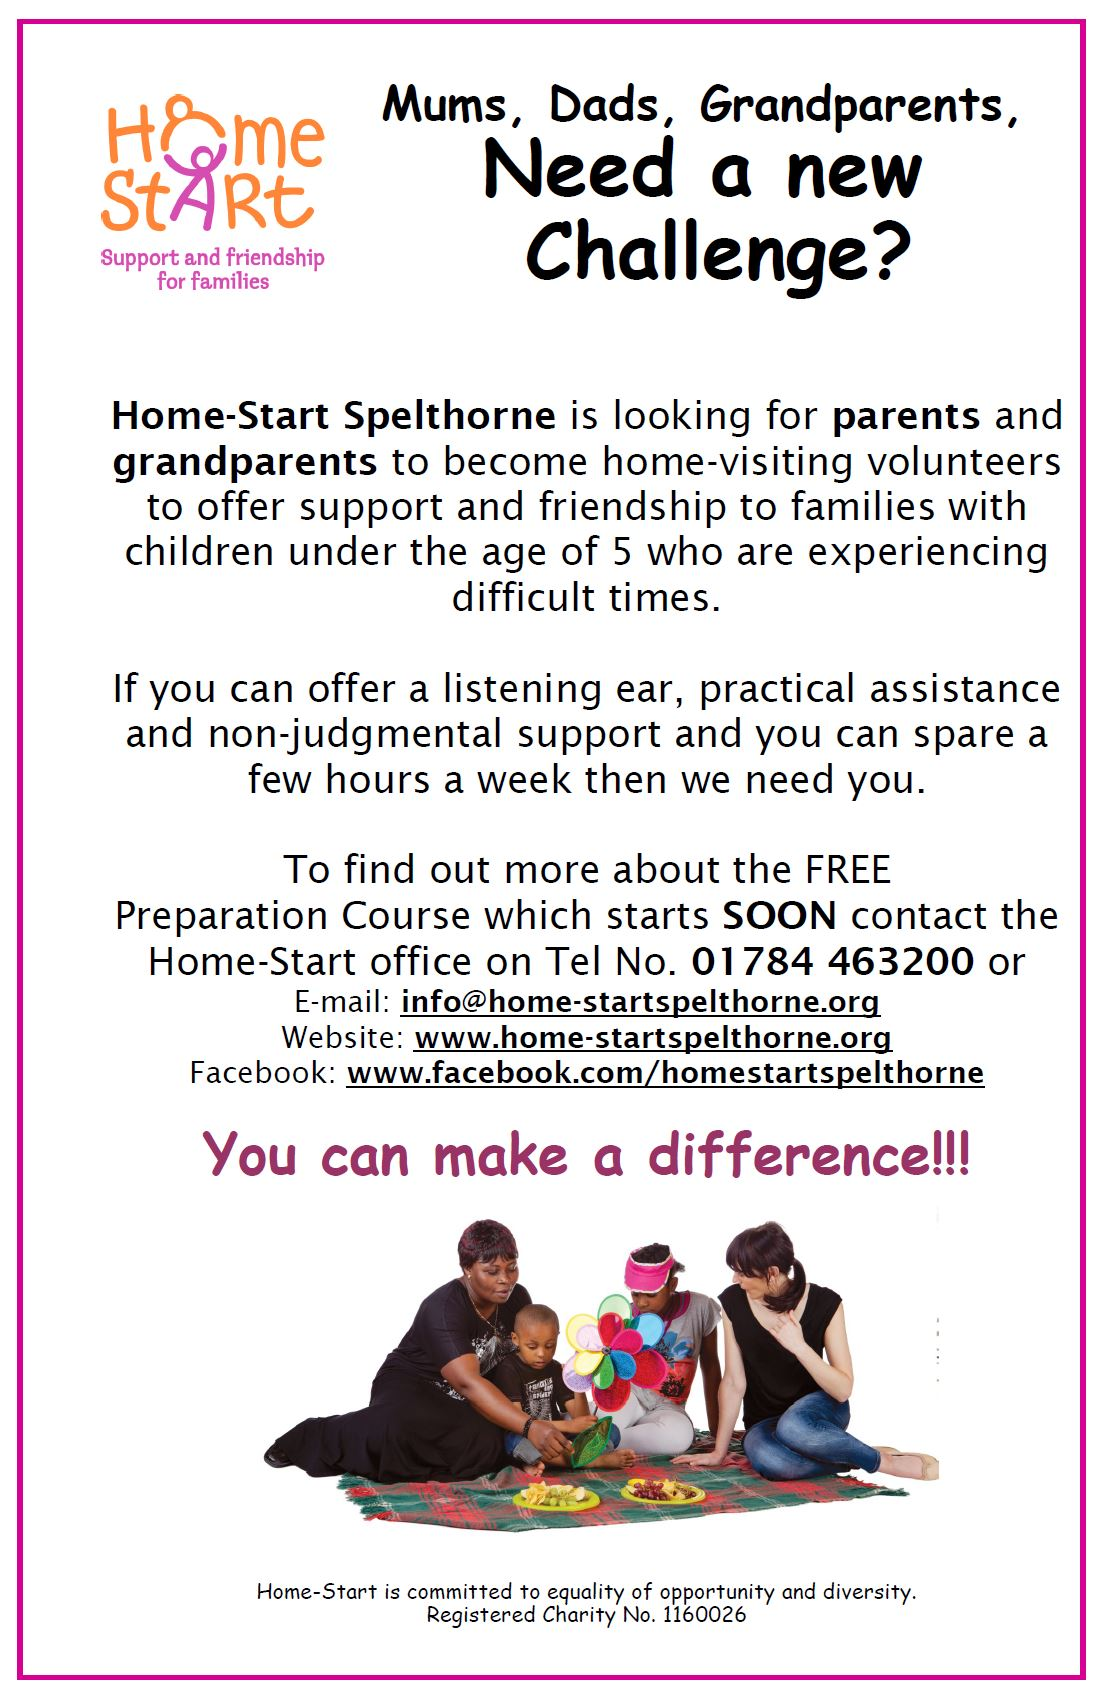 Mums, Dads, Grandparents, Can You Help?